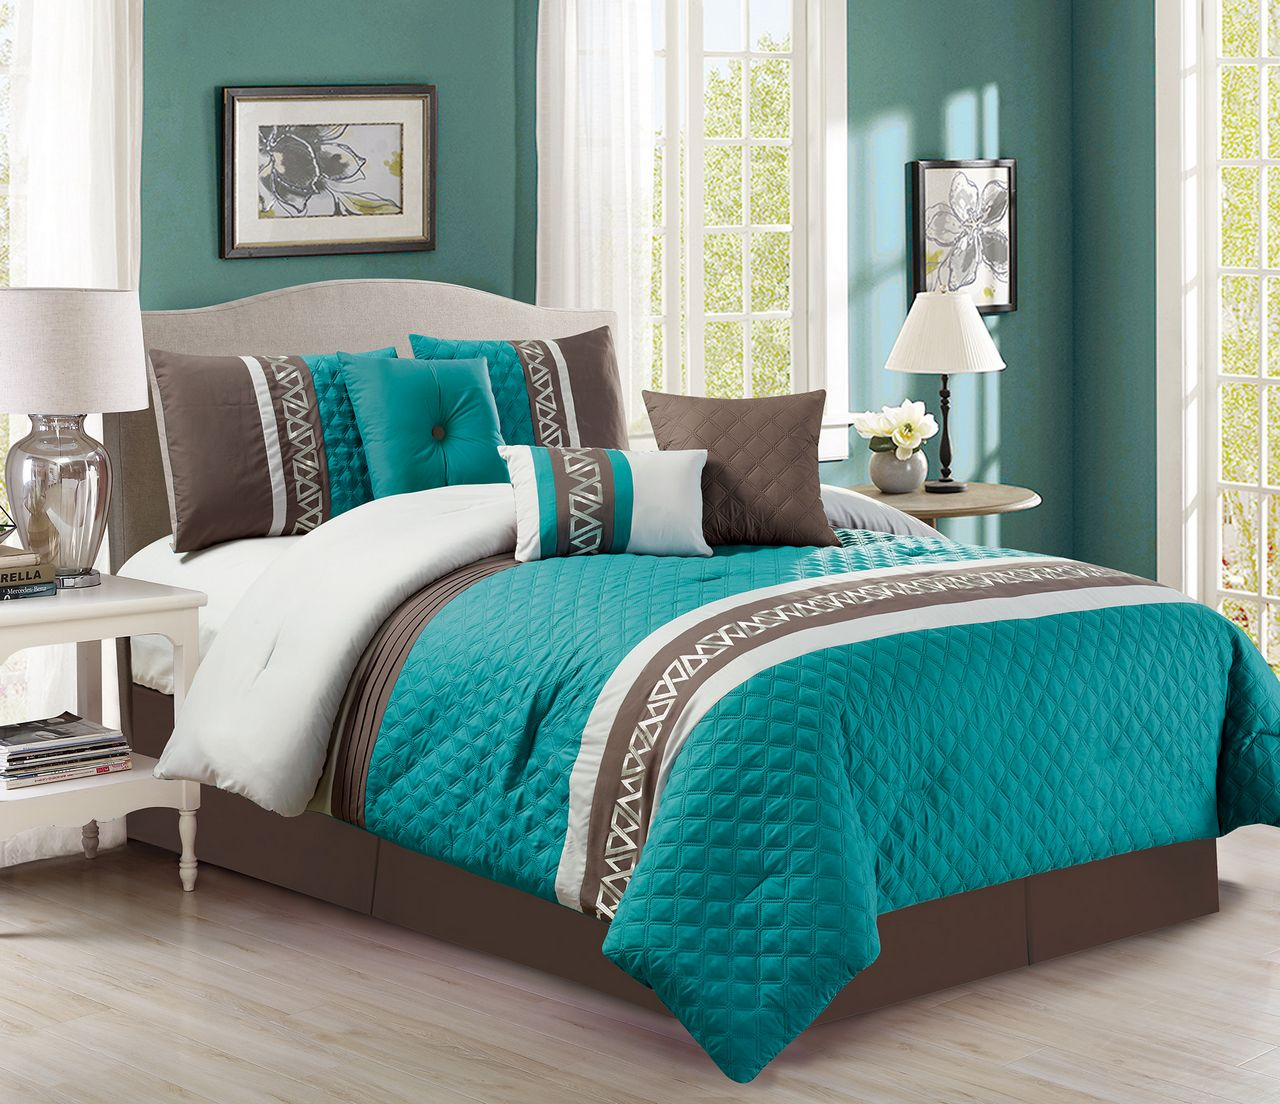 7 Piece Diamond Quilted Teal Chocolate Comforter Set